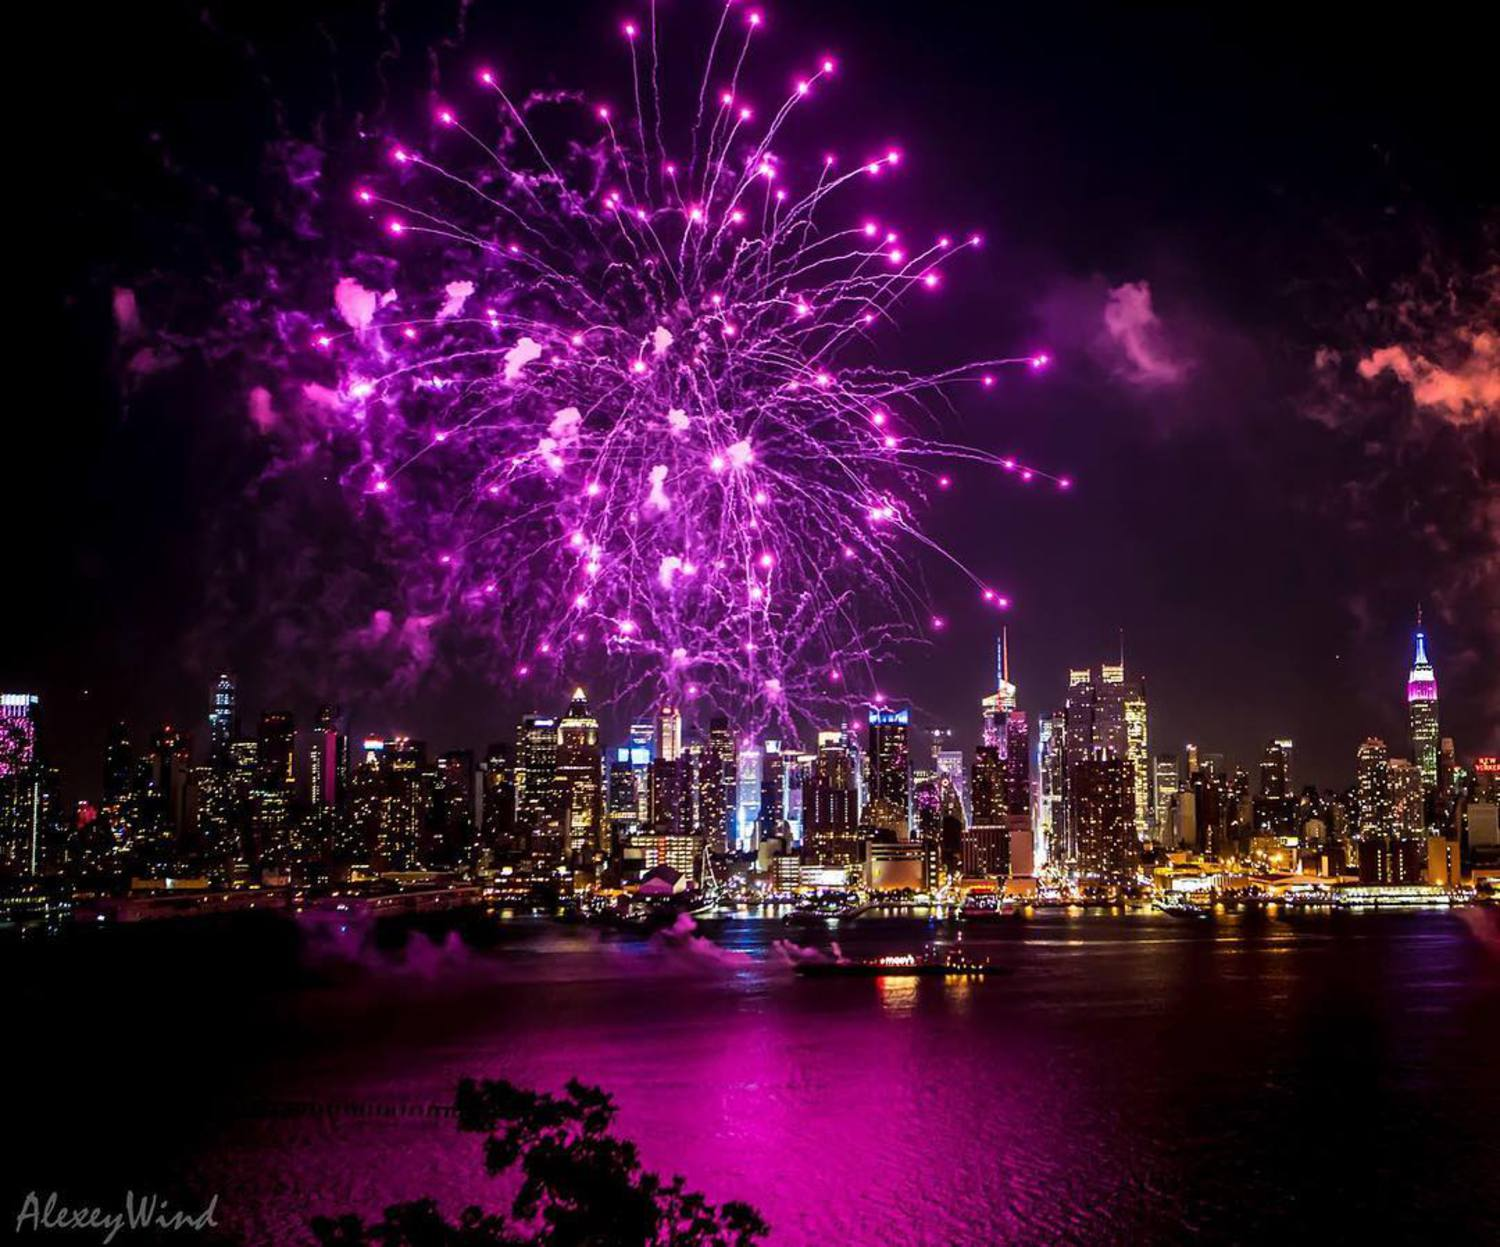 Happy B-Day USA!! 🇺🇸🎉🌃🎆🗽 #nycfireworks #4thofjuly #4thjuly #independenceday #manhattan #nyc #ilovenewyork #nyclove